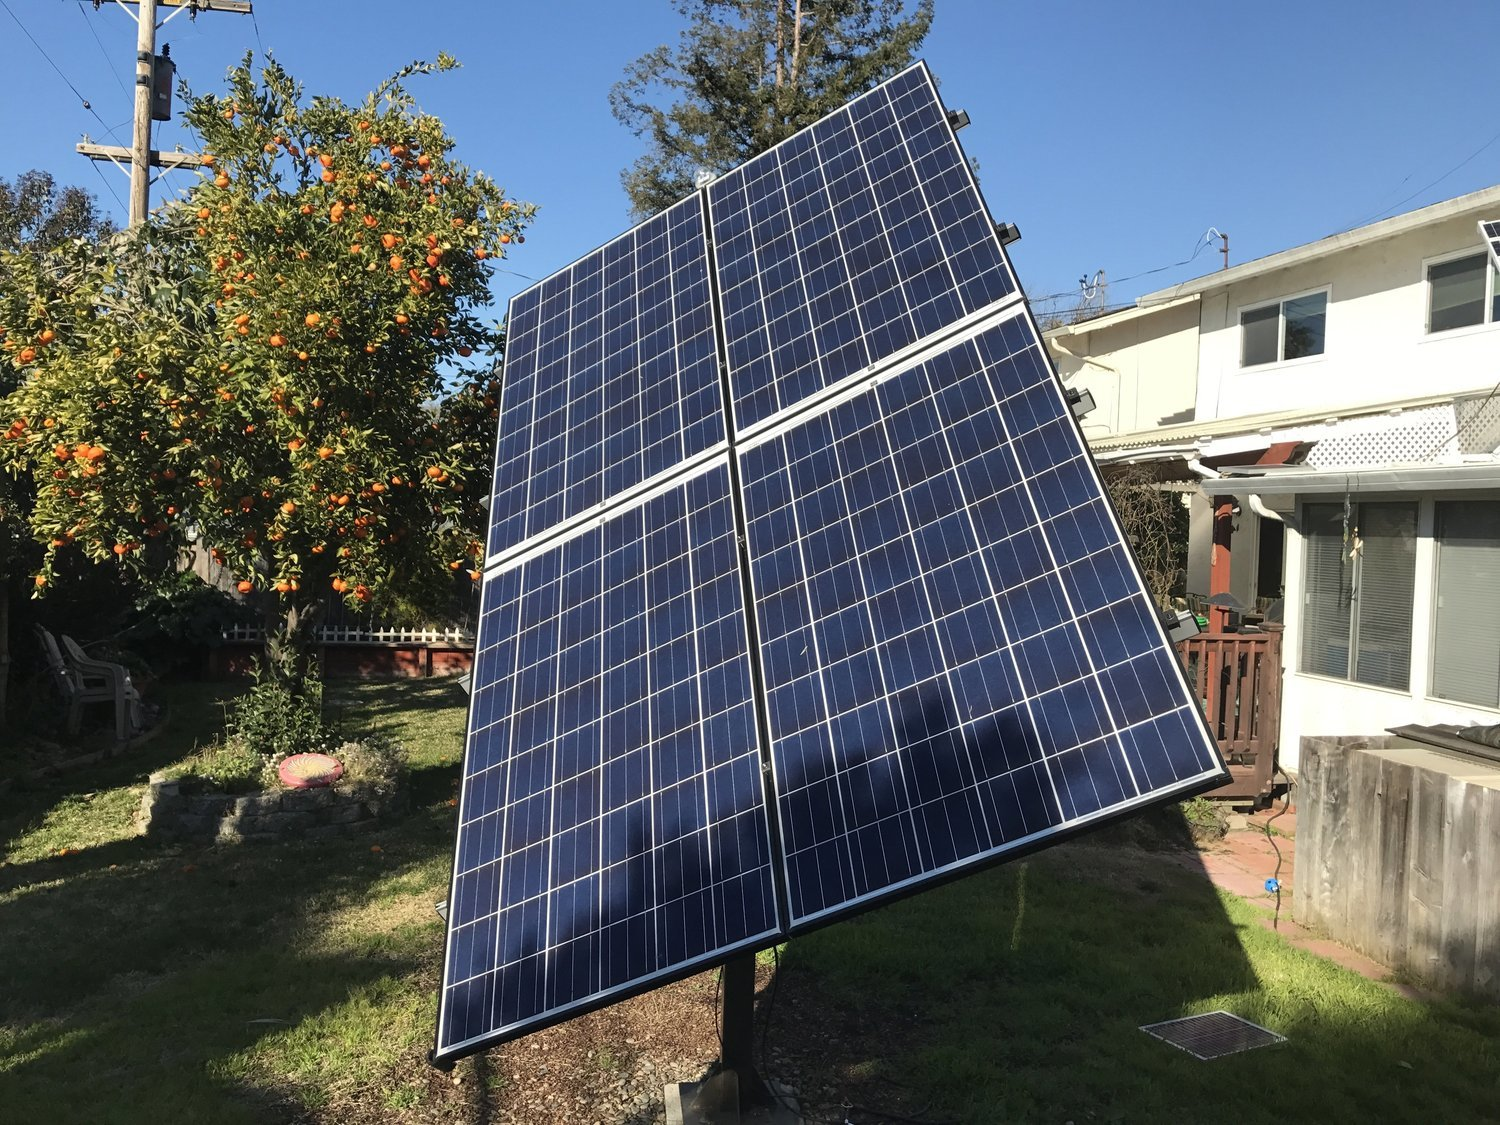 sTracker Dual Axis Solar Tracking System with Solar Panels and Inverters